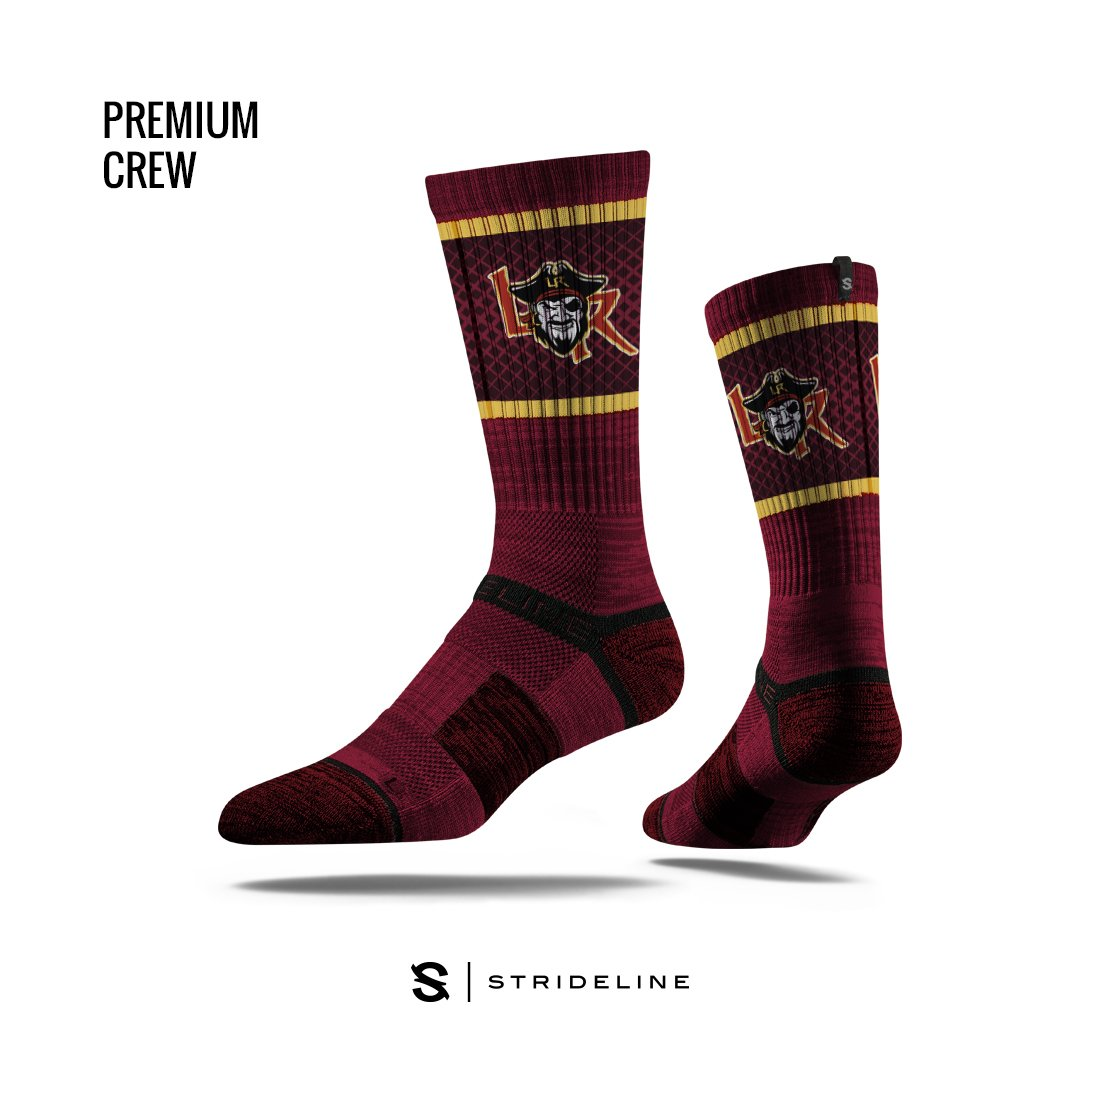 Lake Roosevelt High School Apparel | Socks | Premium